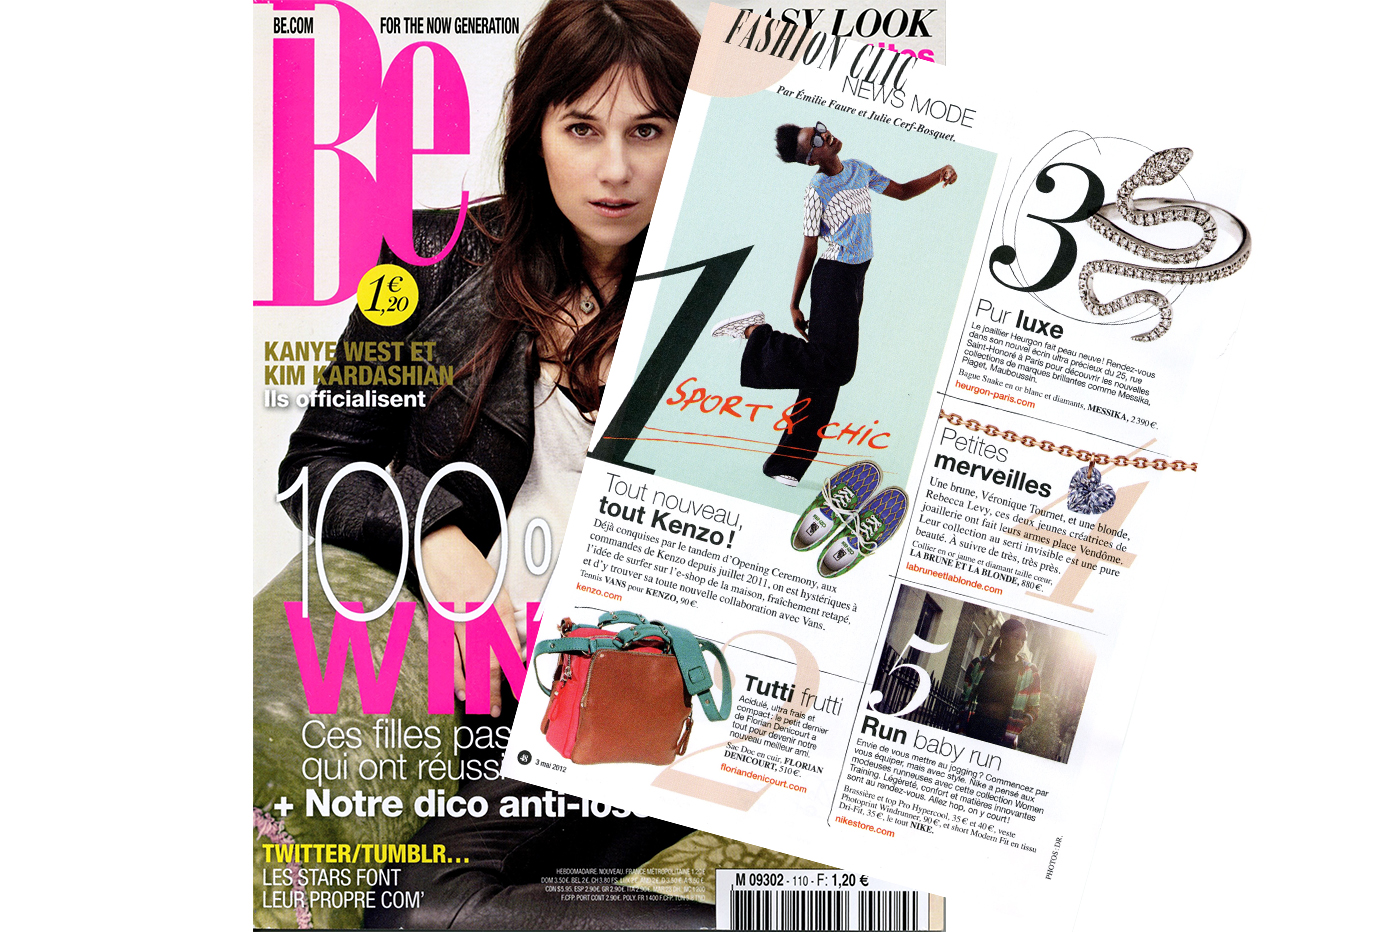 BE A BLOND, BE A BRUNETTE– BE MAGAZINE